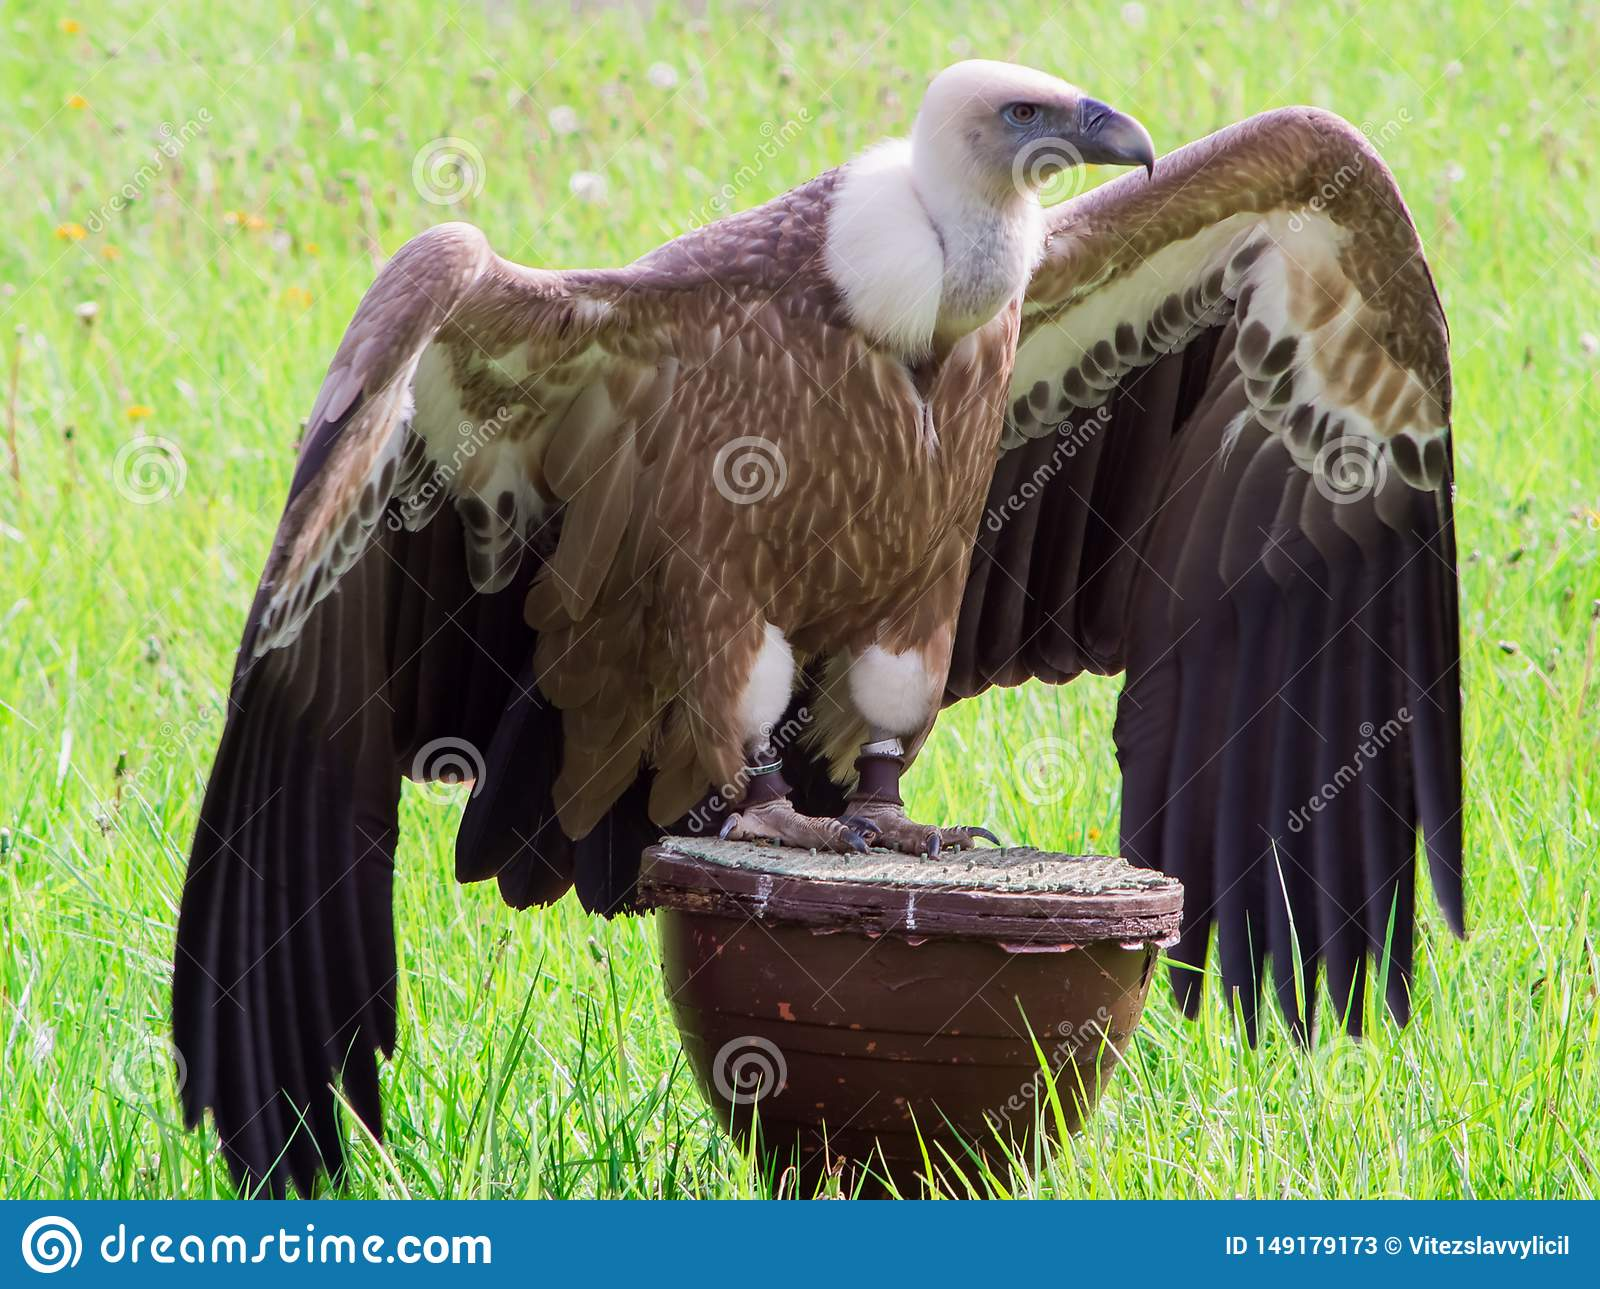 Griffon vulture on a stand